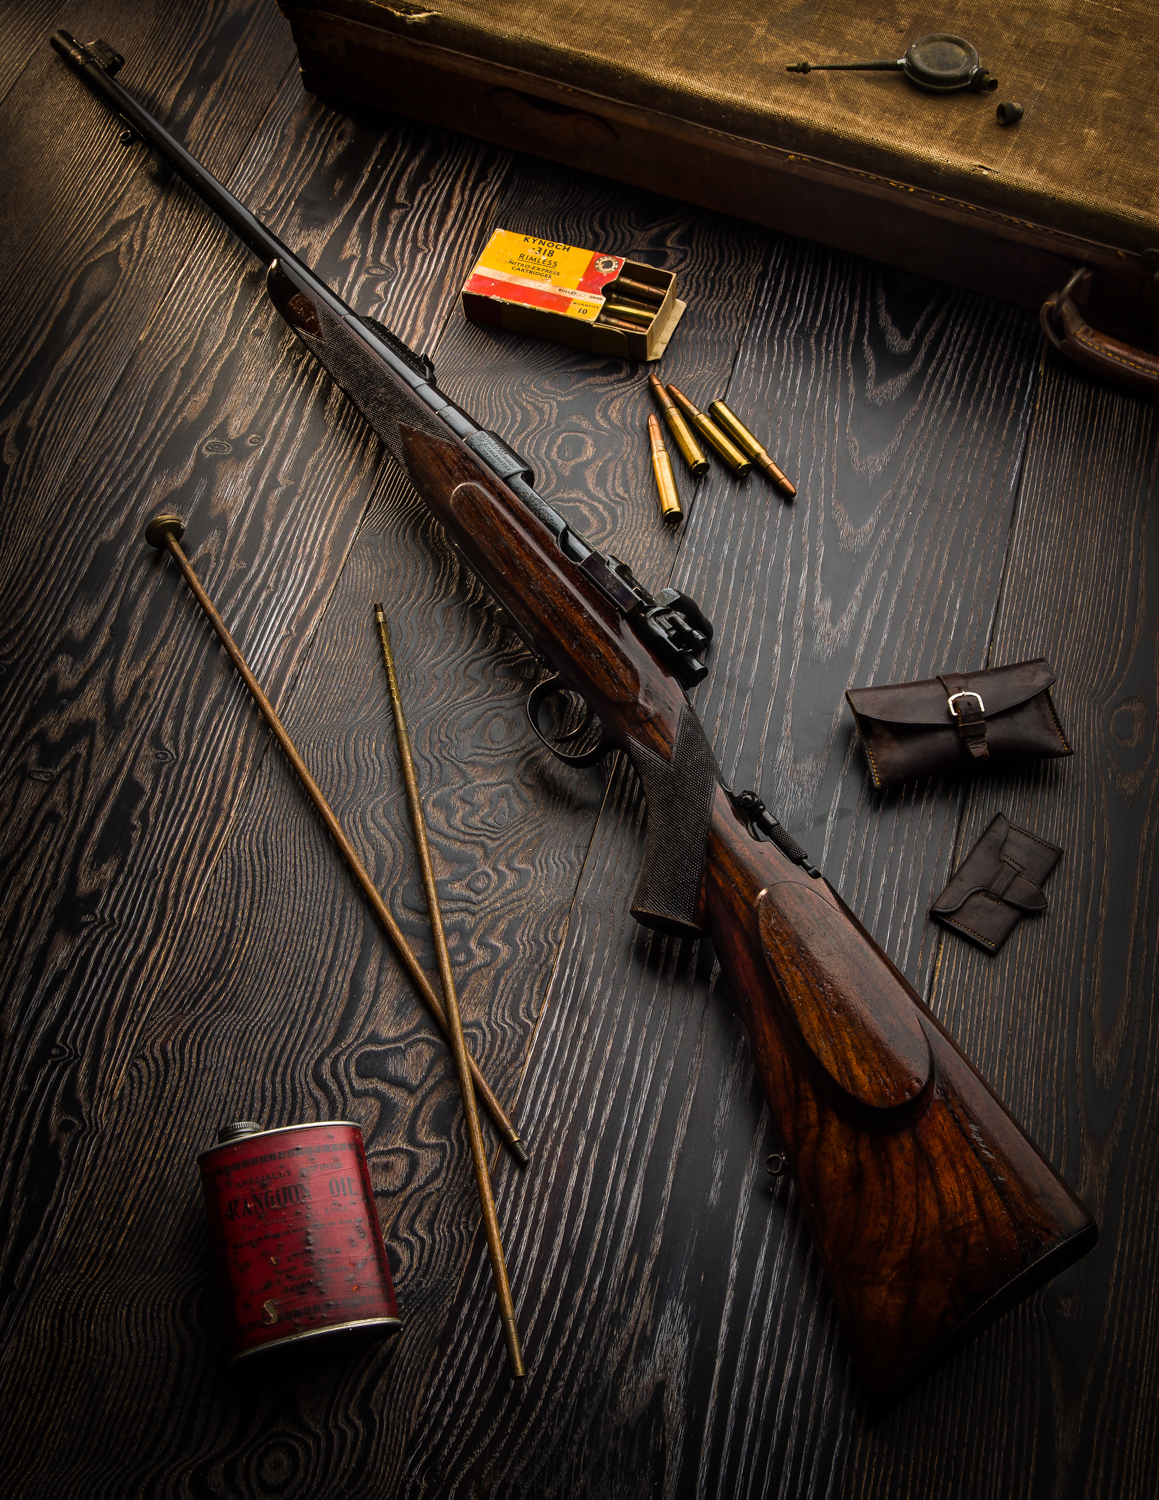 Vinatge Westley Richards .318 Accelerated Express